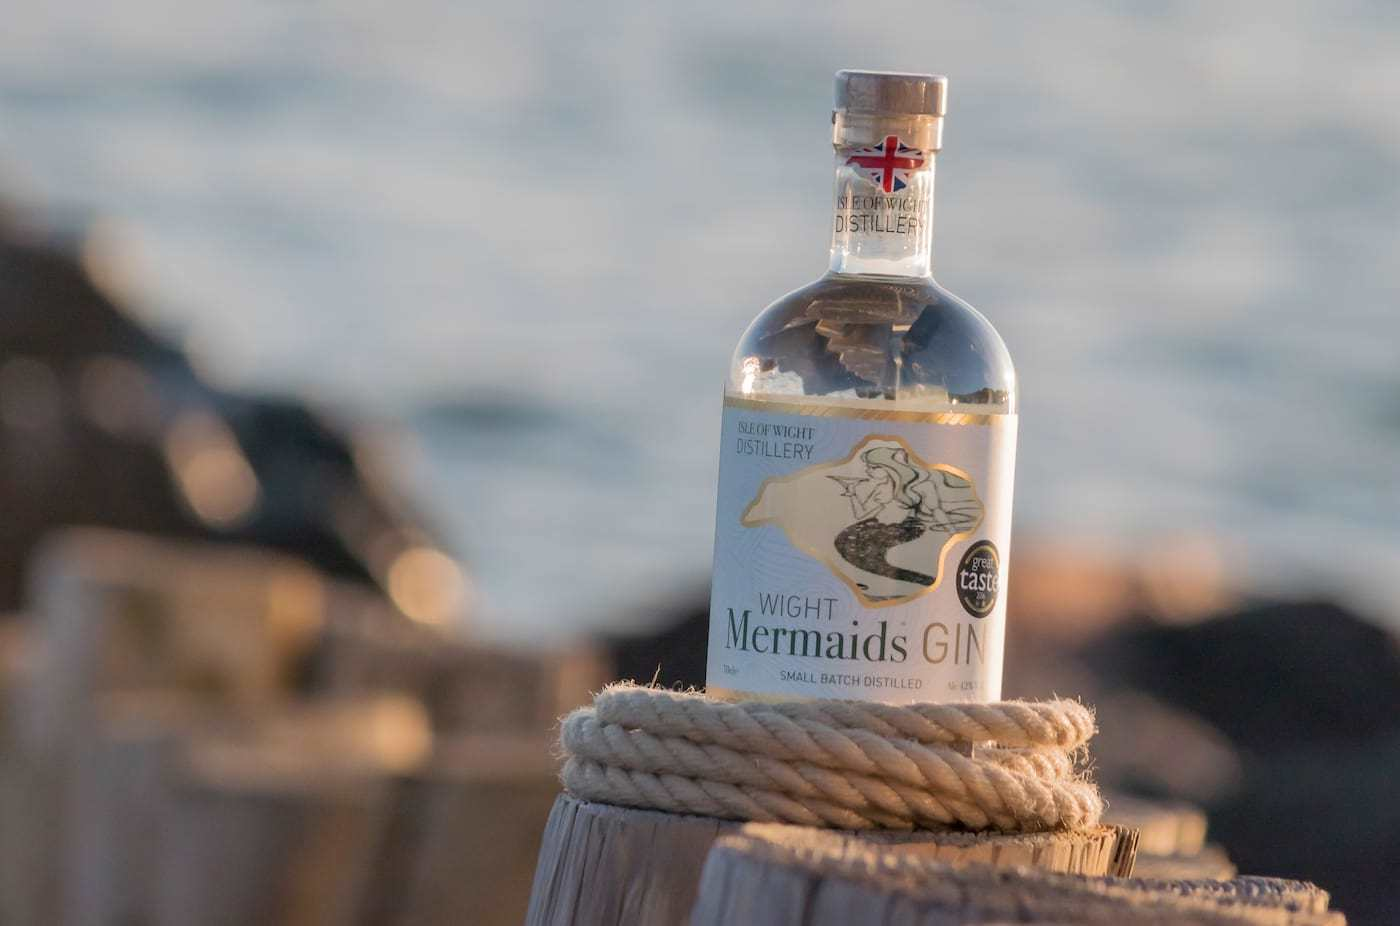 Wight Mermaids Gin at The Caledon Guest House, Bed and Breakfast, Cowes Isle of Wight